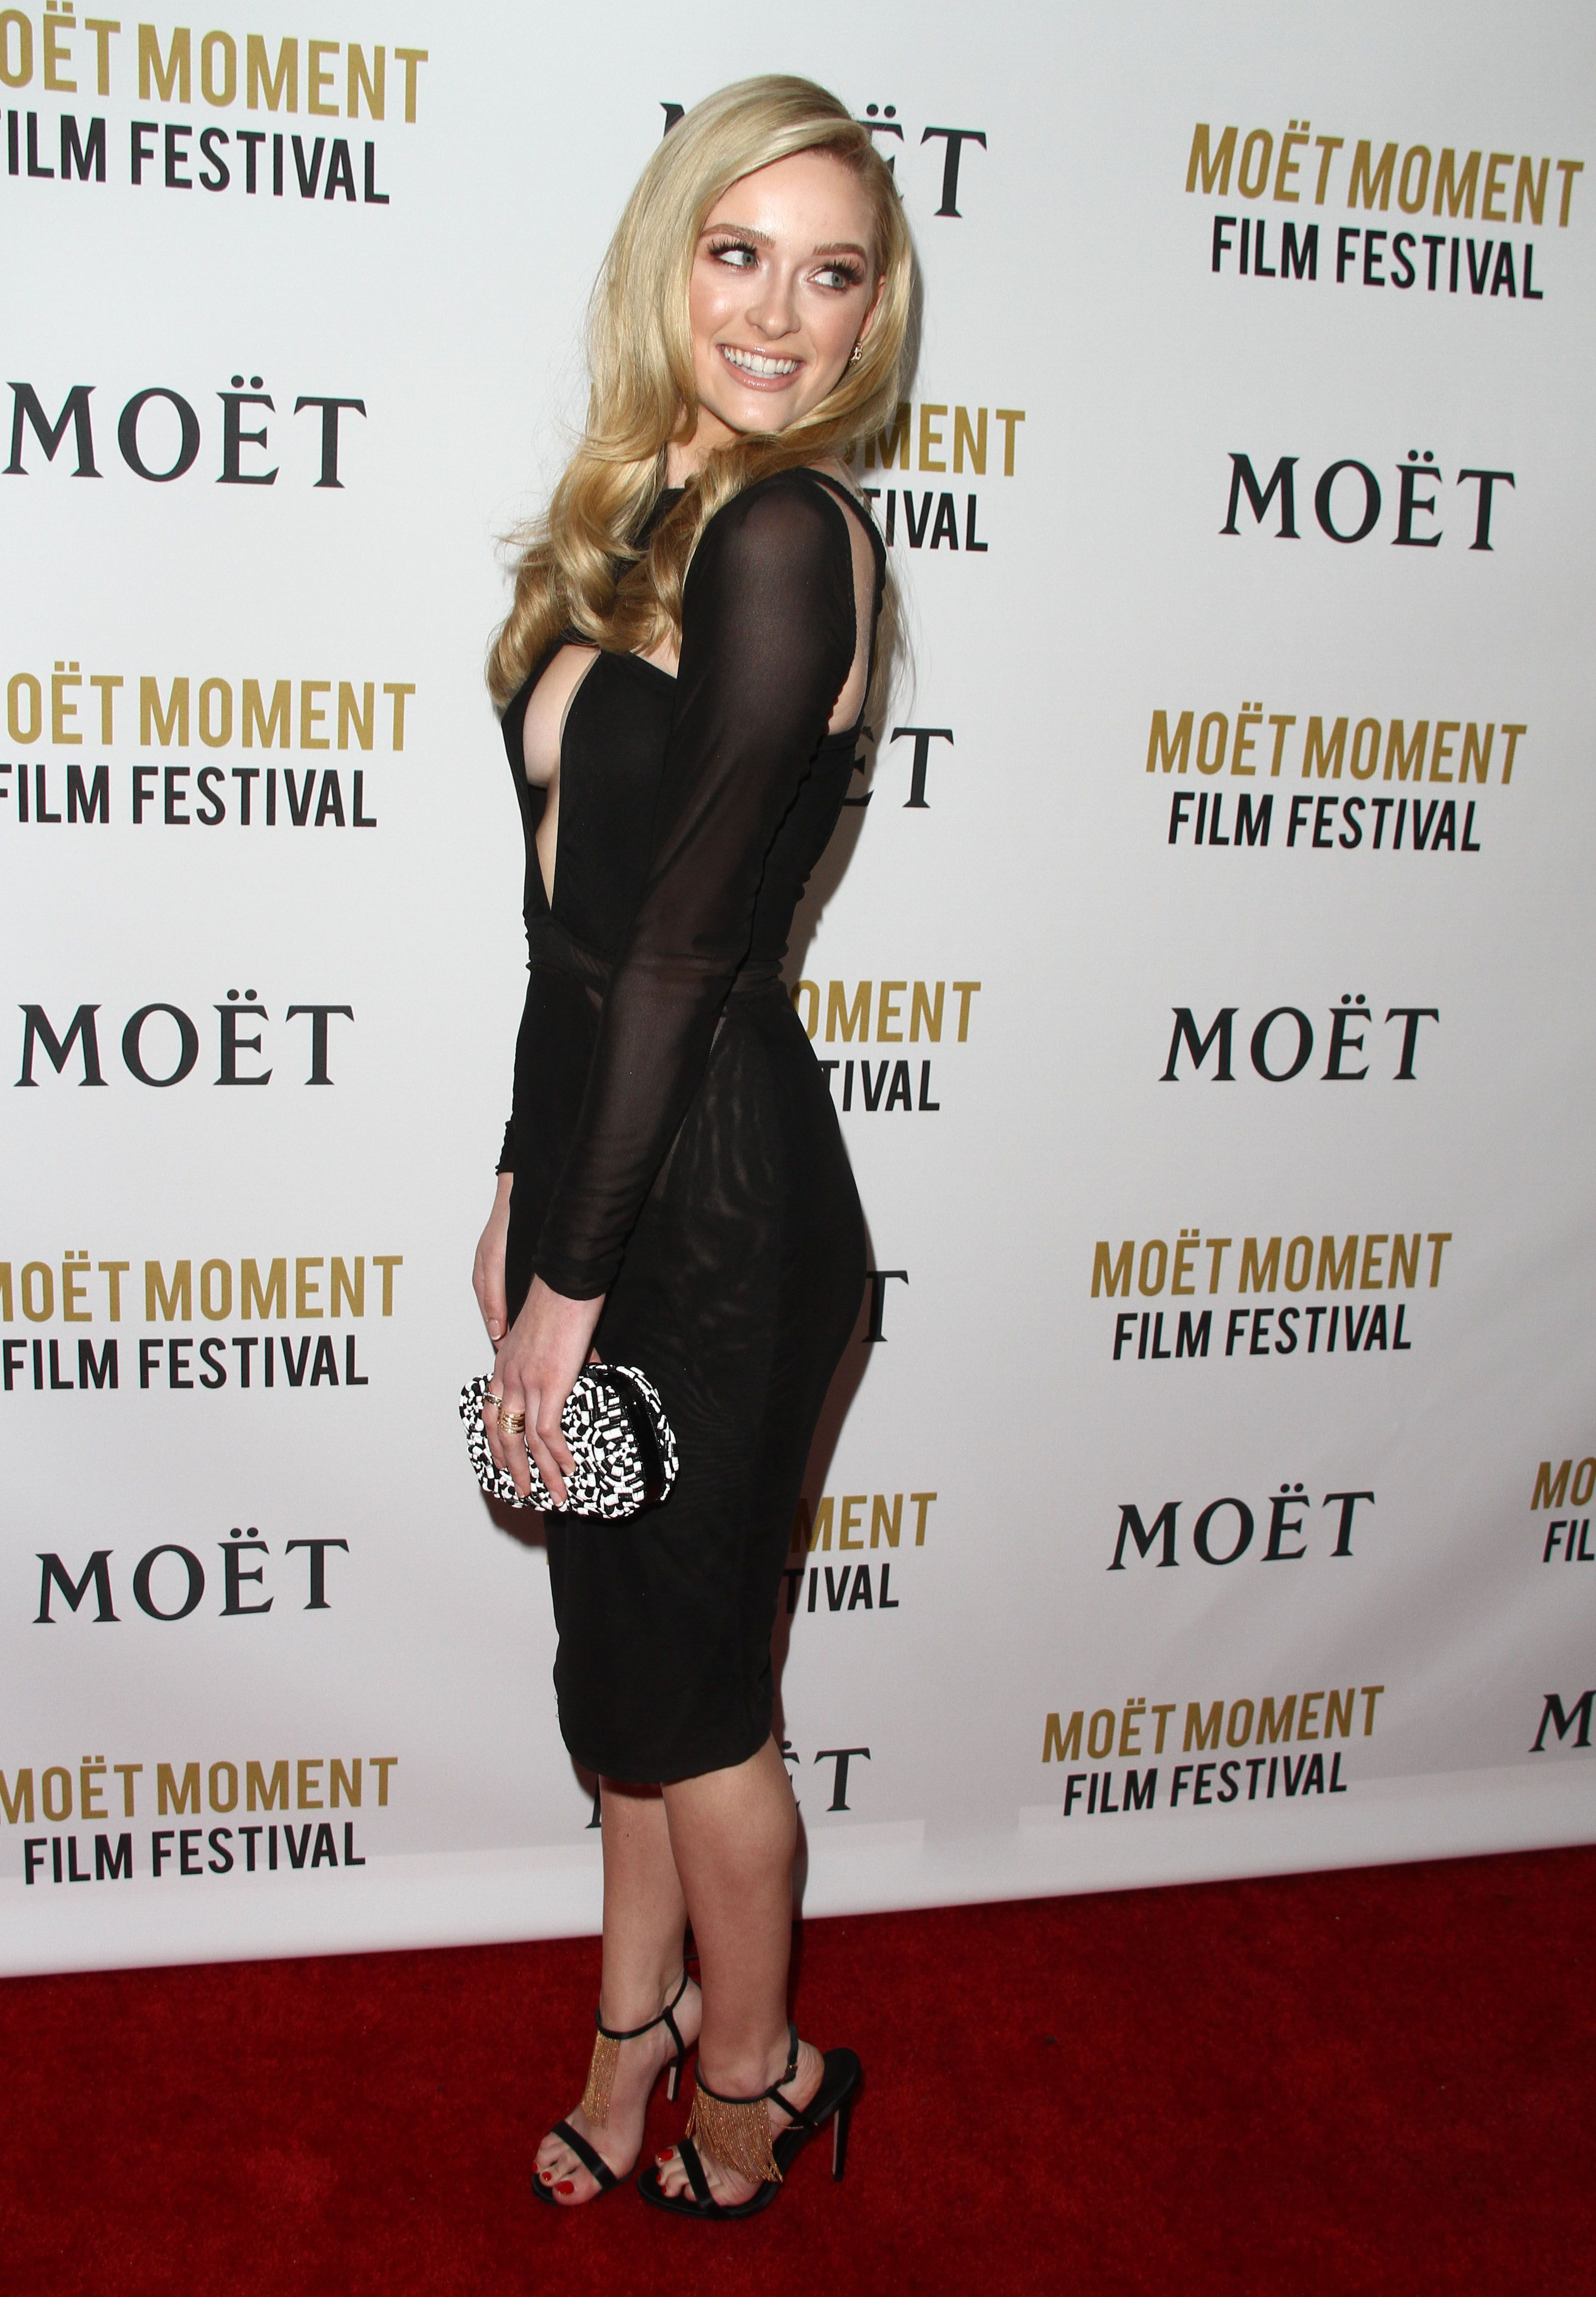 Sexy pics of Greer Grammer